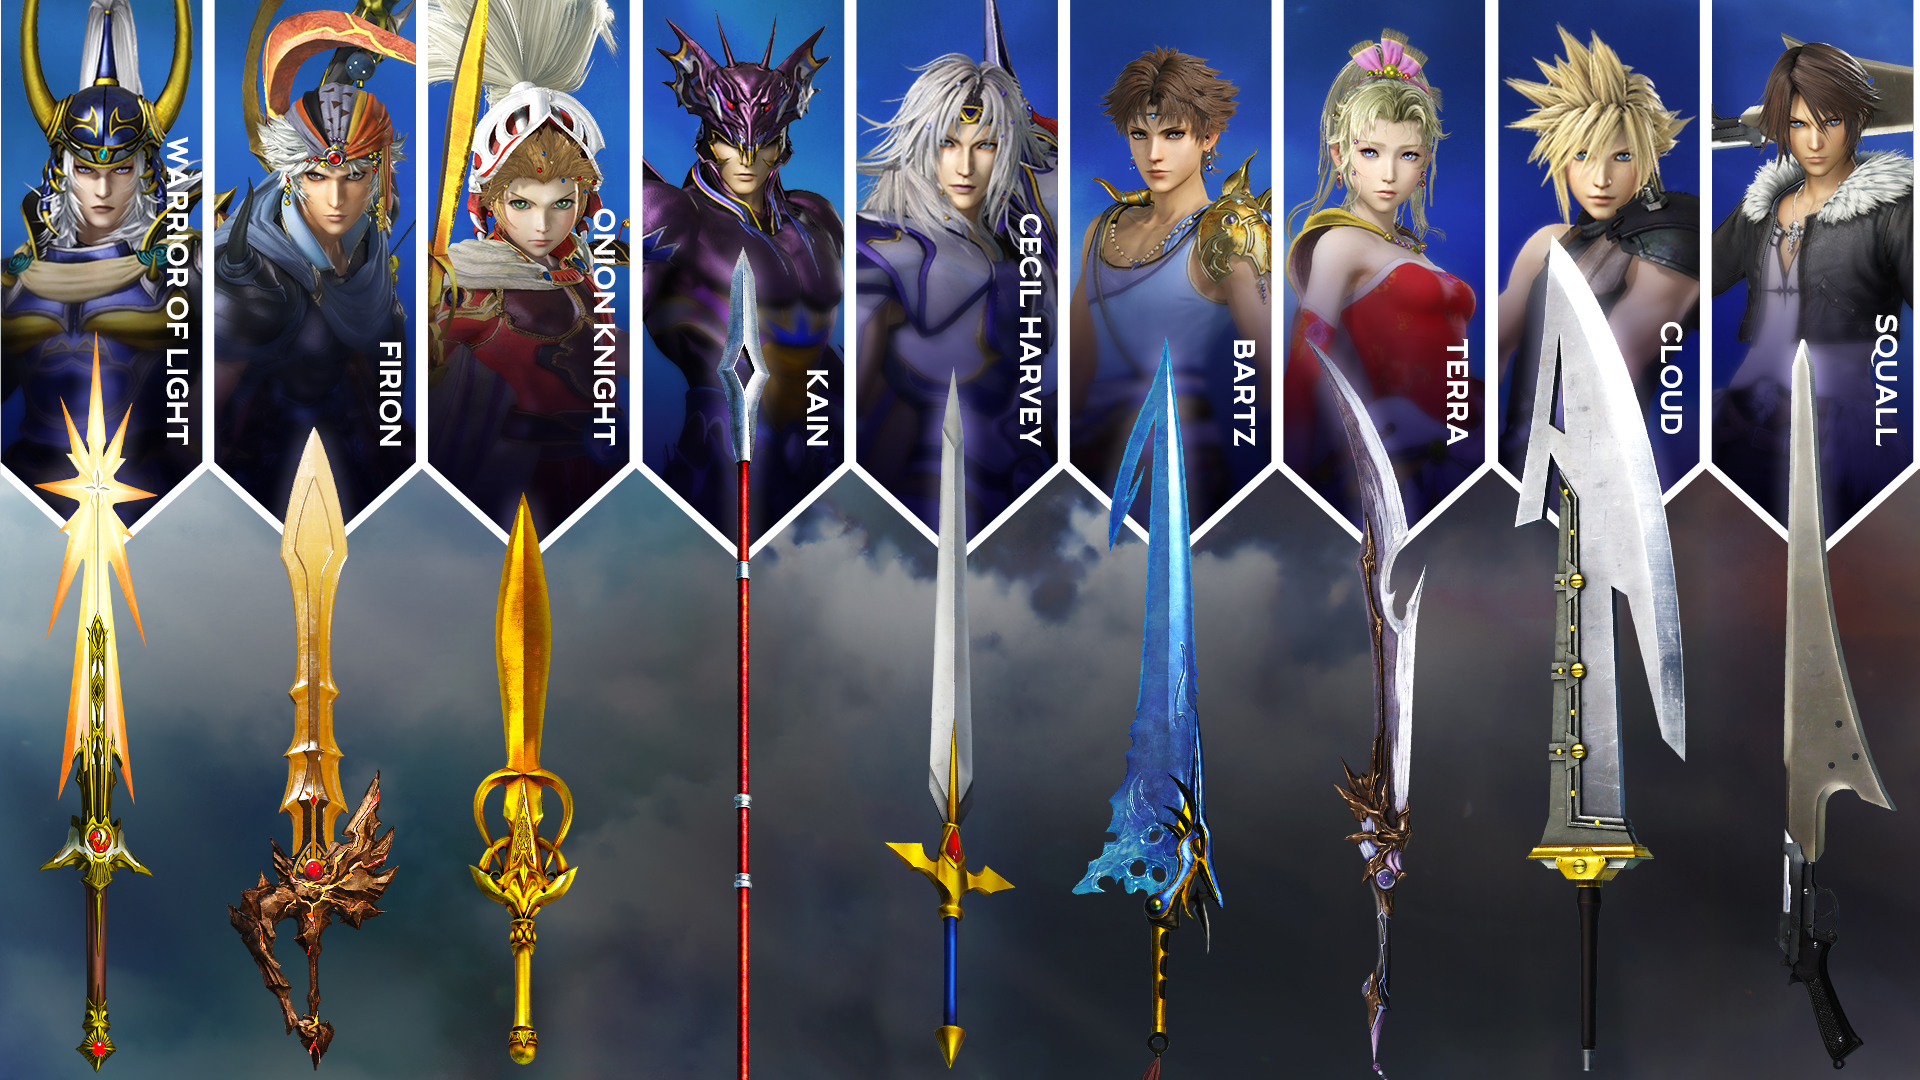 Weapons Pack Dlc Coming To Dissidia Nt Kingdom Of Fantasy